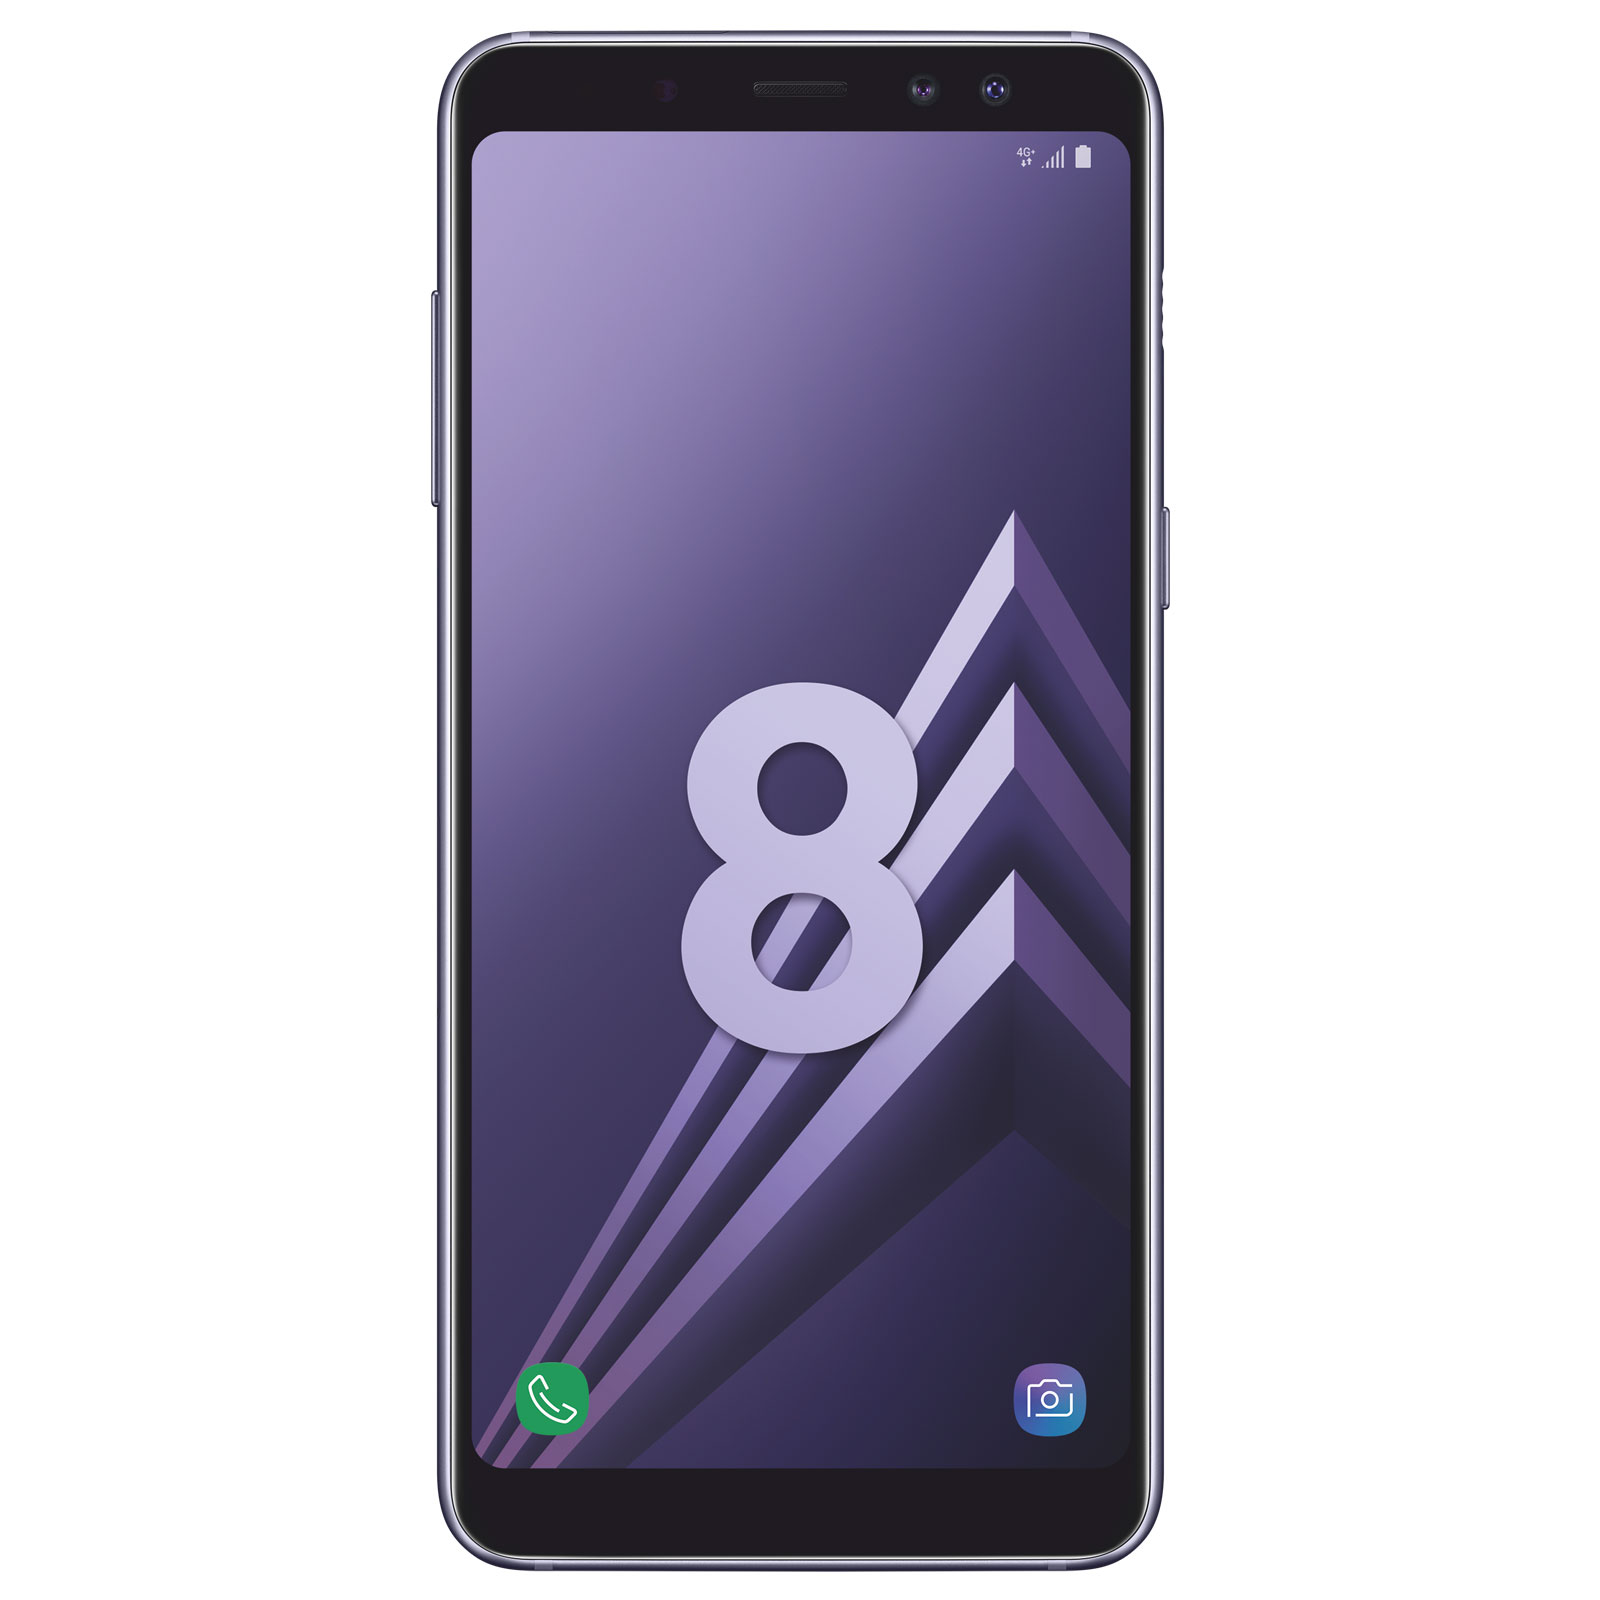 """Mobile & smartphone Samsung Galaxy A8 Orchidée Smartphone 4G-LTE Advanced IP68 Dual SIM - Exynos 7885 8-Core 2.2 Ghz - RAM 4 Go - Ecran tactile 5.6"""" 1080 x 2220 - 32 Go - NFC/Bluetooth 5.0 - 3000 mAh - Android 7.1"""